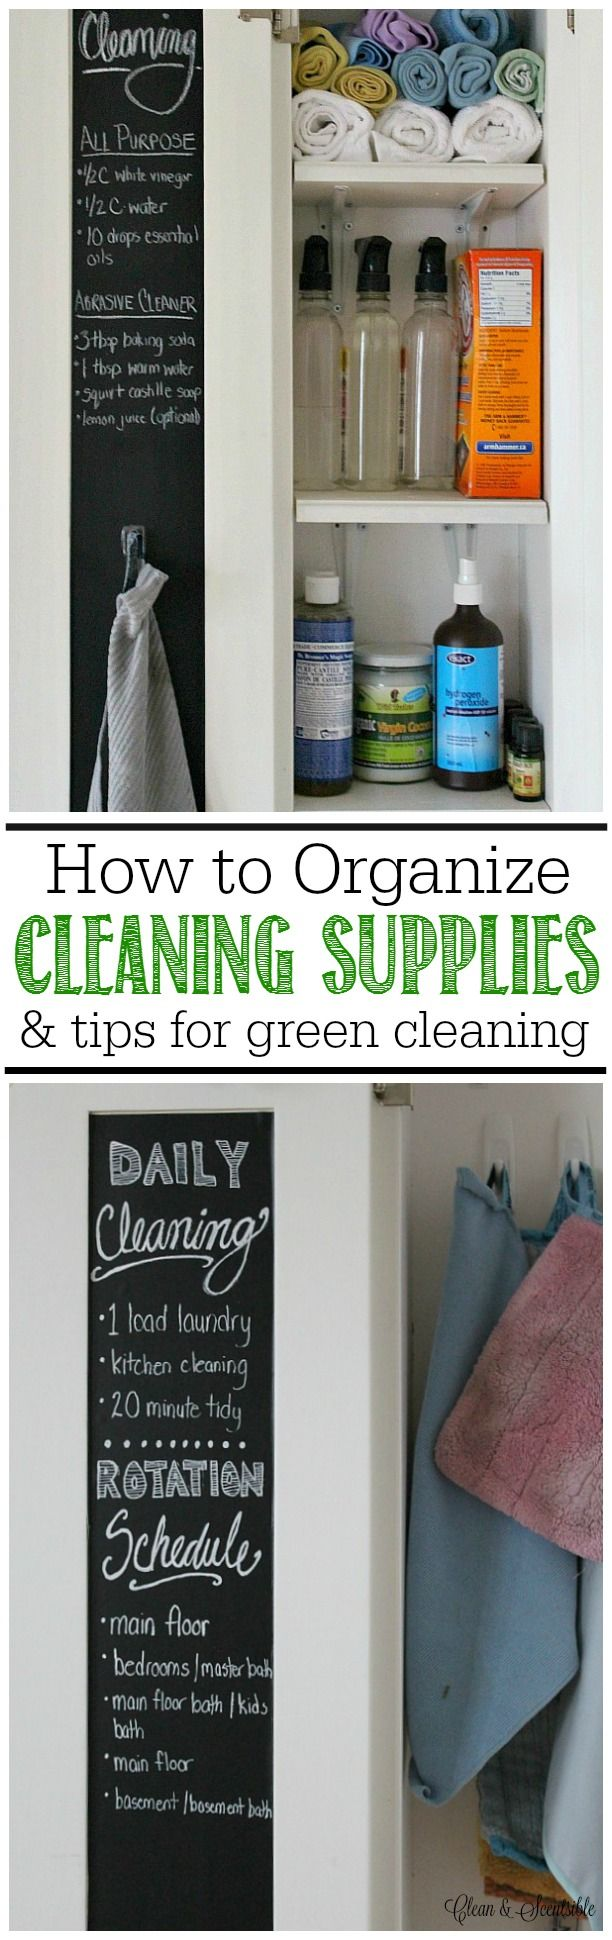 Great ideas on how to organize cleaning supplies so they're neat and accessible, and basic green cleaning tips.